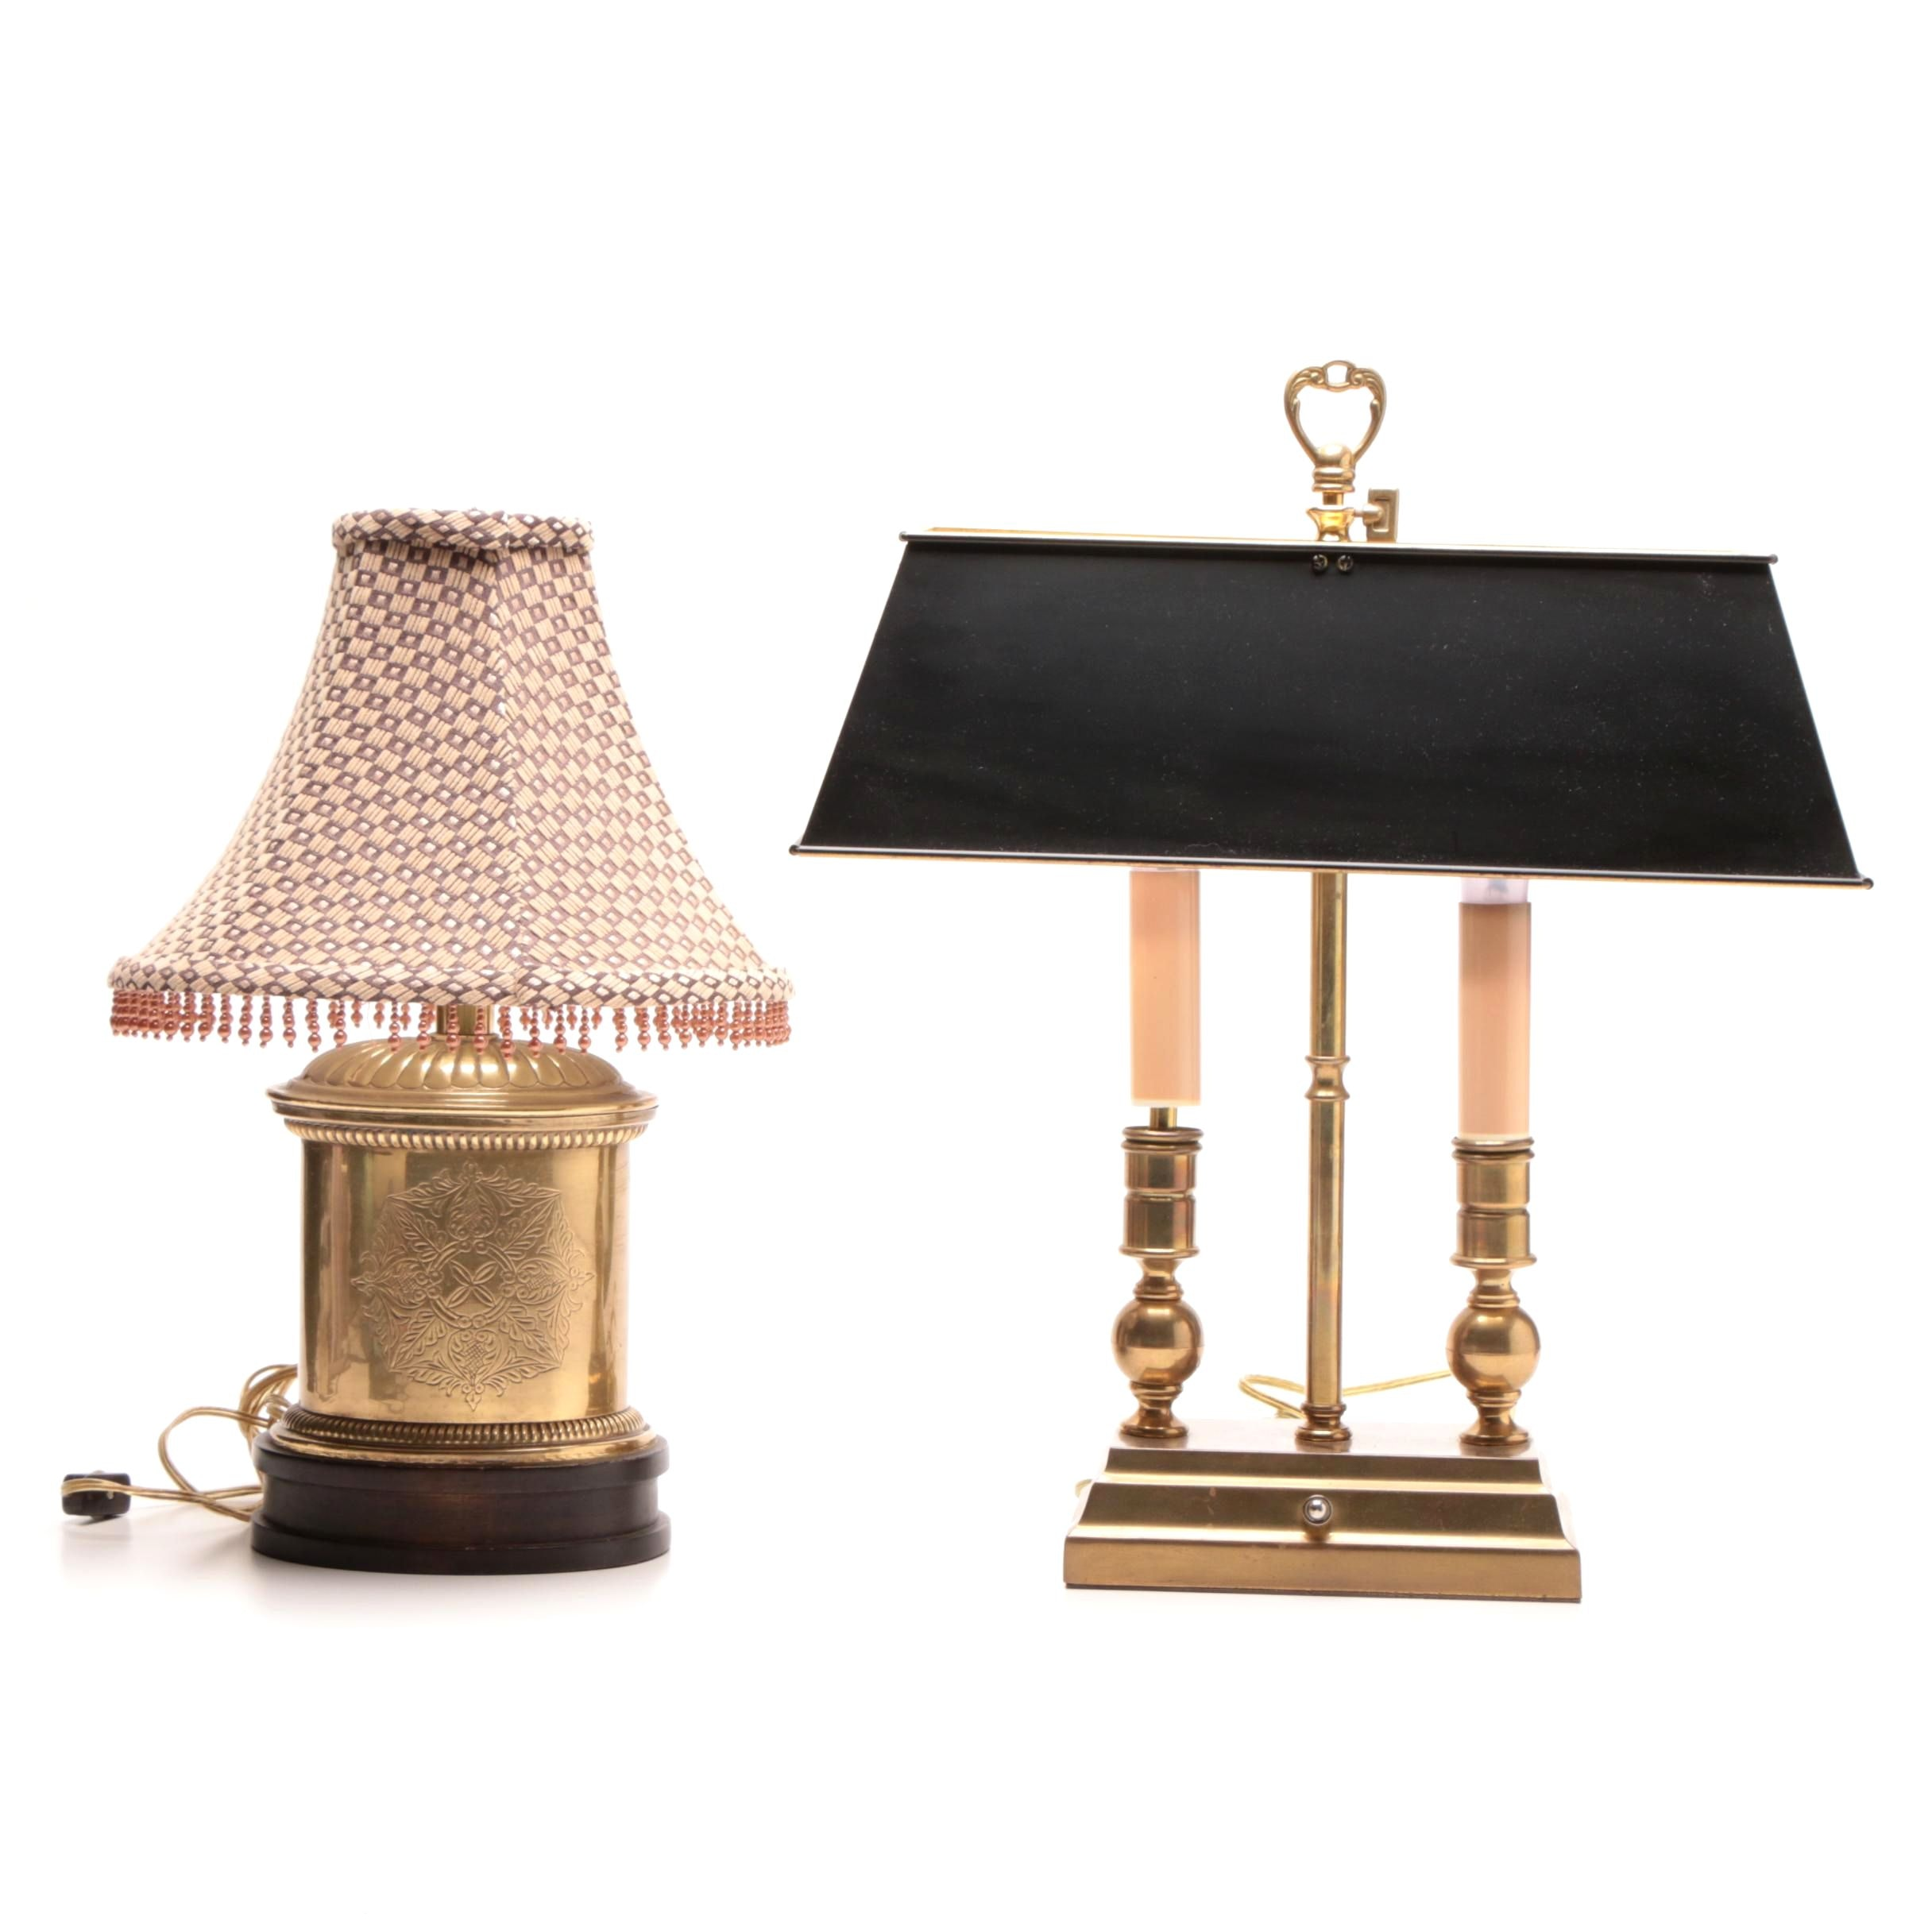 Bouillotte Brass and Metal Table Lamp and Decorative Brass and Wood Lamp